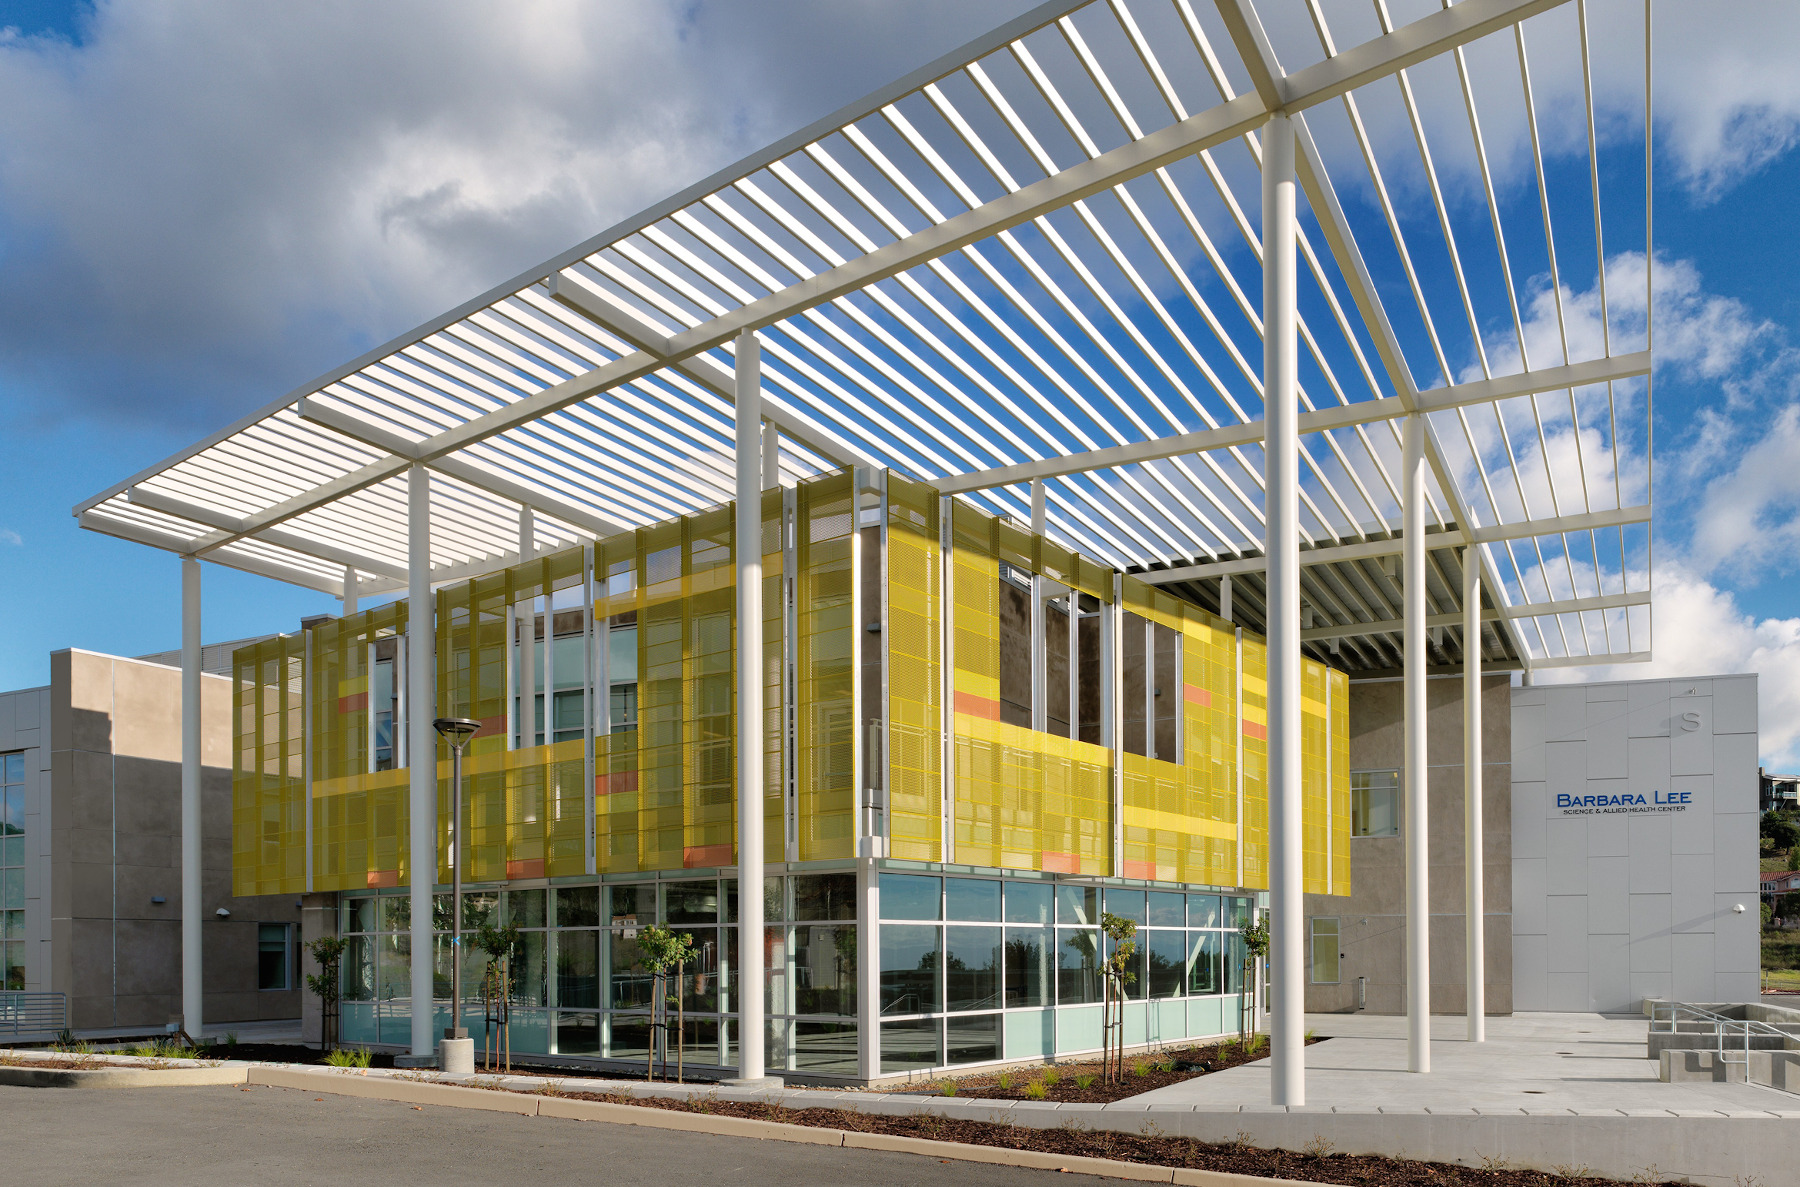 Merritt College - Barbara Lee Center for Science and Allied Health